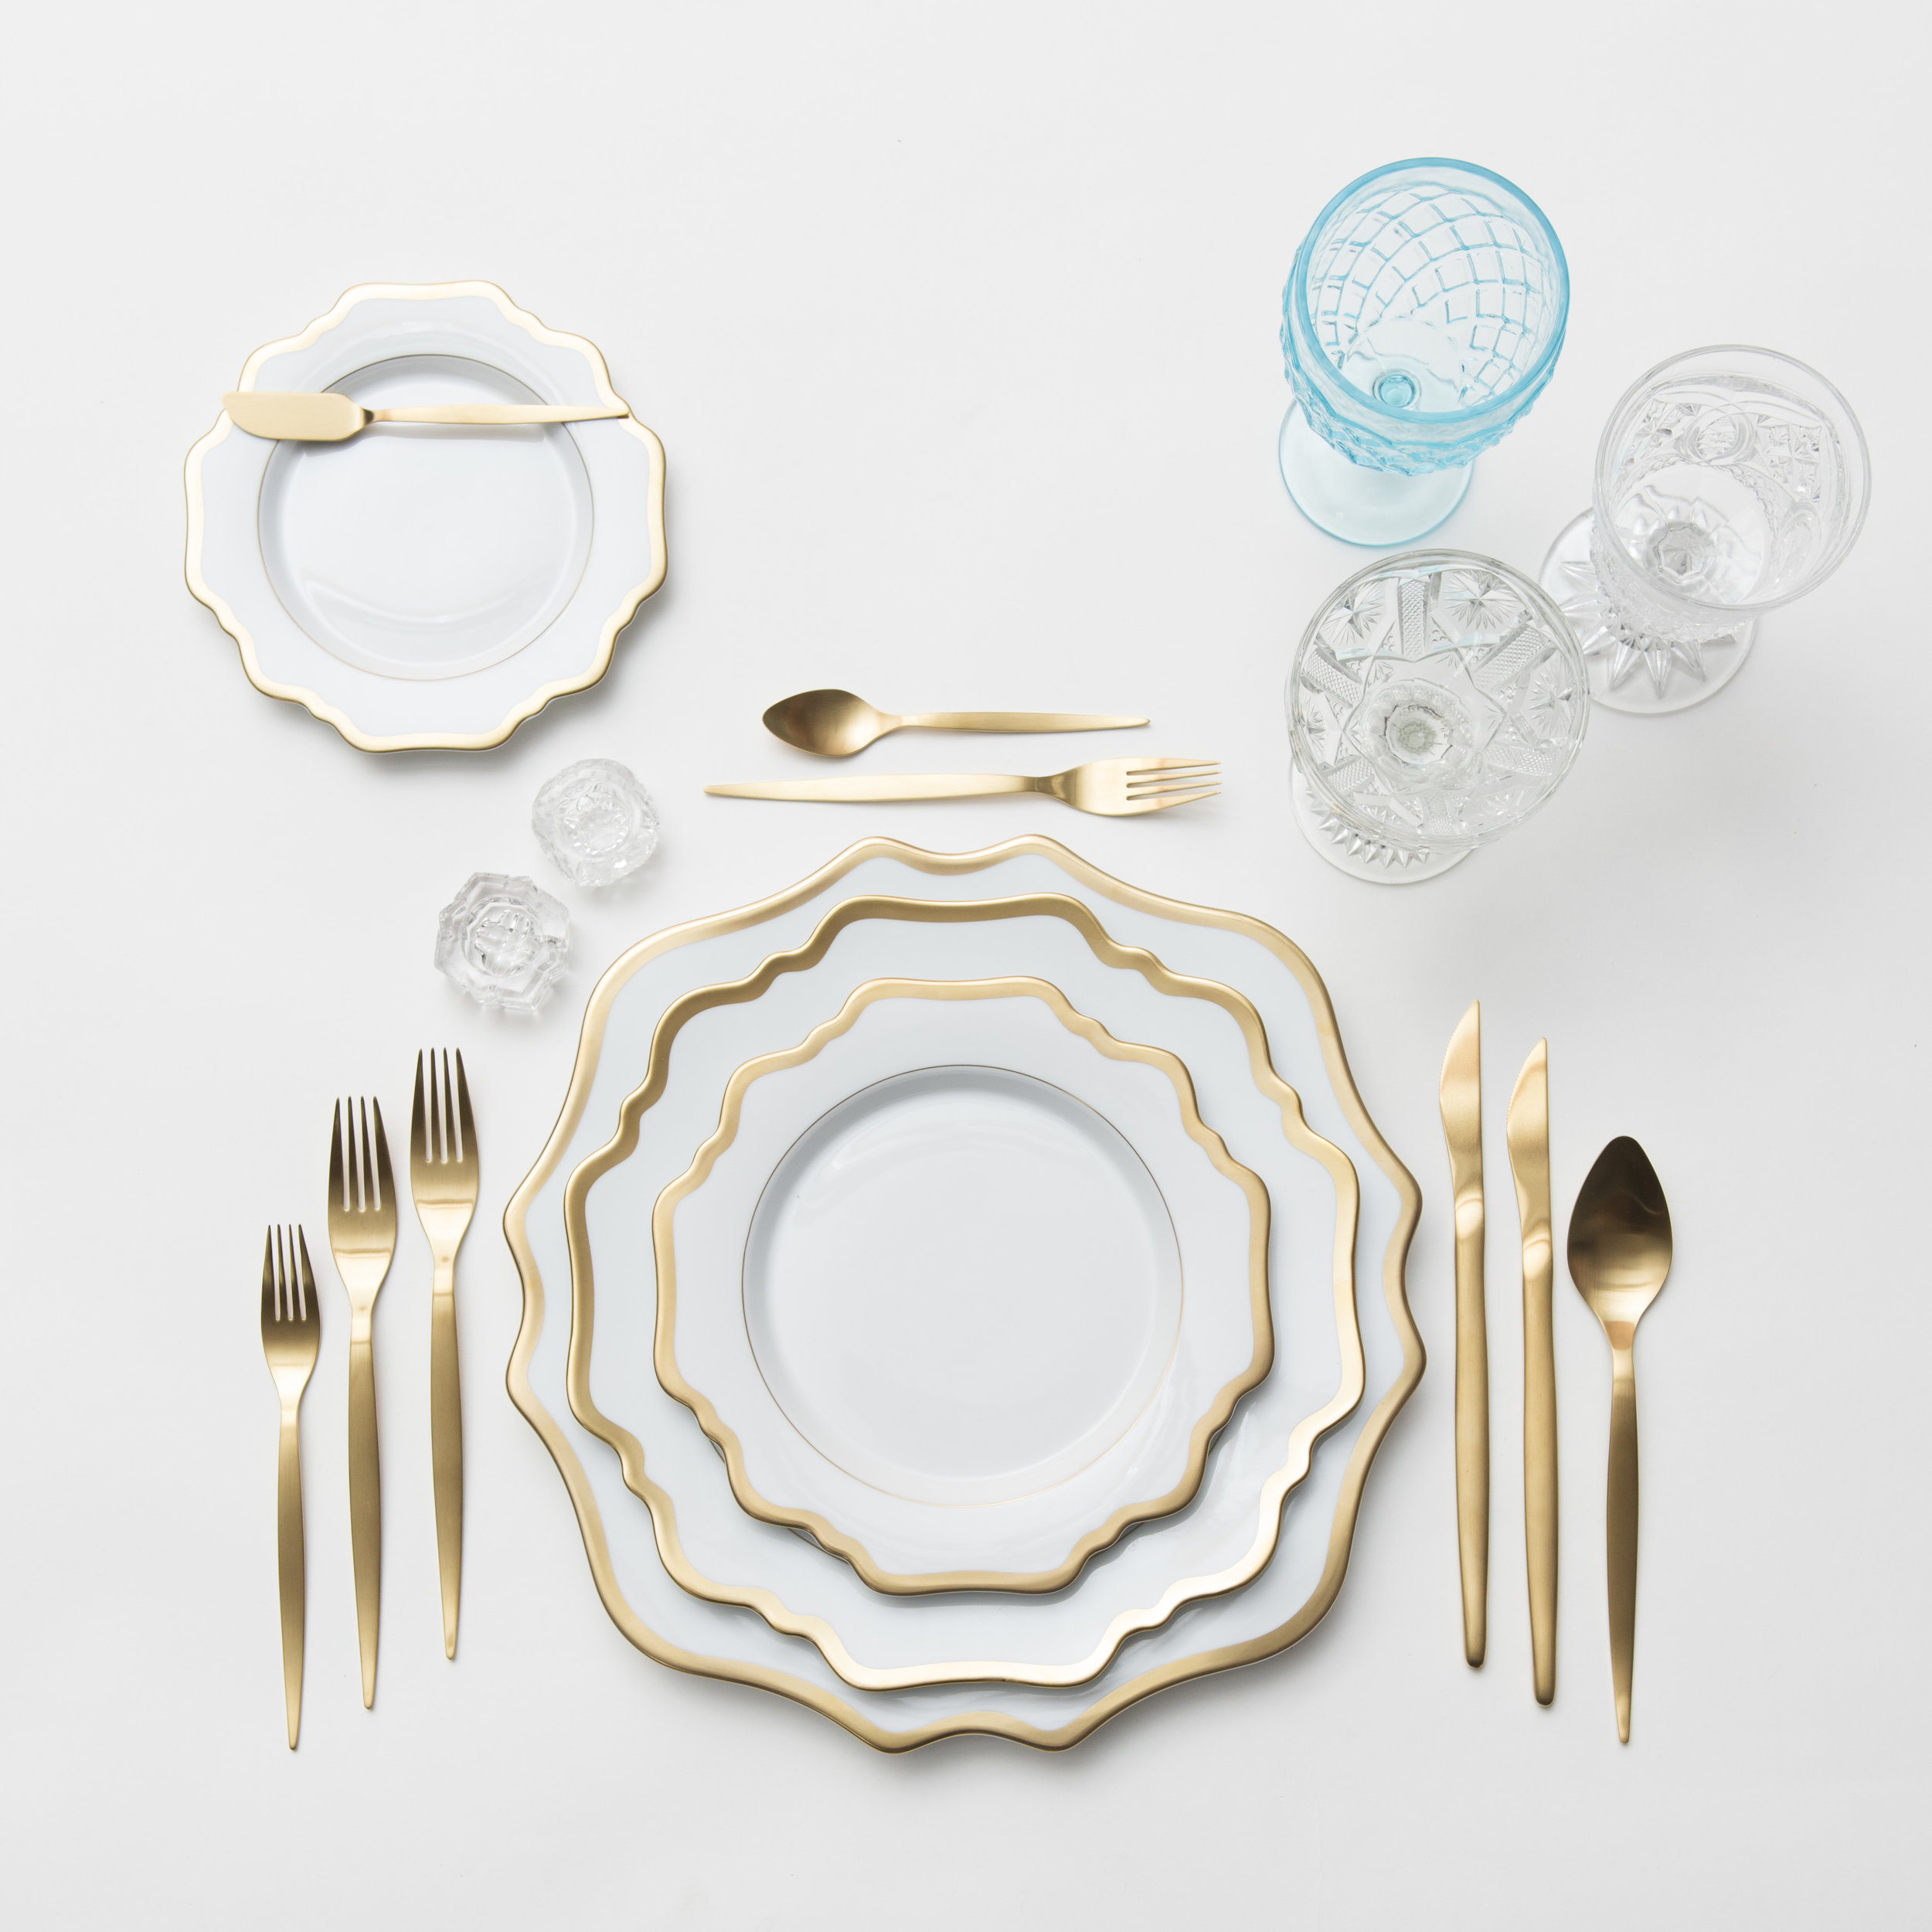 RENT: Anna Weatherley Chargers/Dinnerware in White/Gold + Celeste Flatware in Matte Gold + Aqua Vintage Goblets + Early American Pressed Glass Goblets + Vintage Champagne Coupes + Antique Crystal Salt Cellars  SHOP:Anna Weatherley Dinnerware in White/Gold